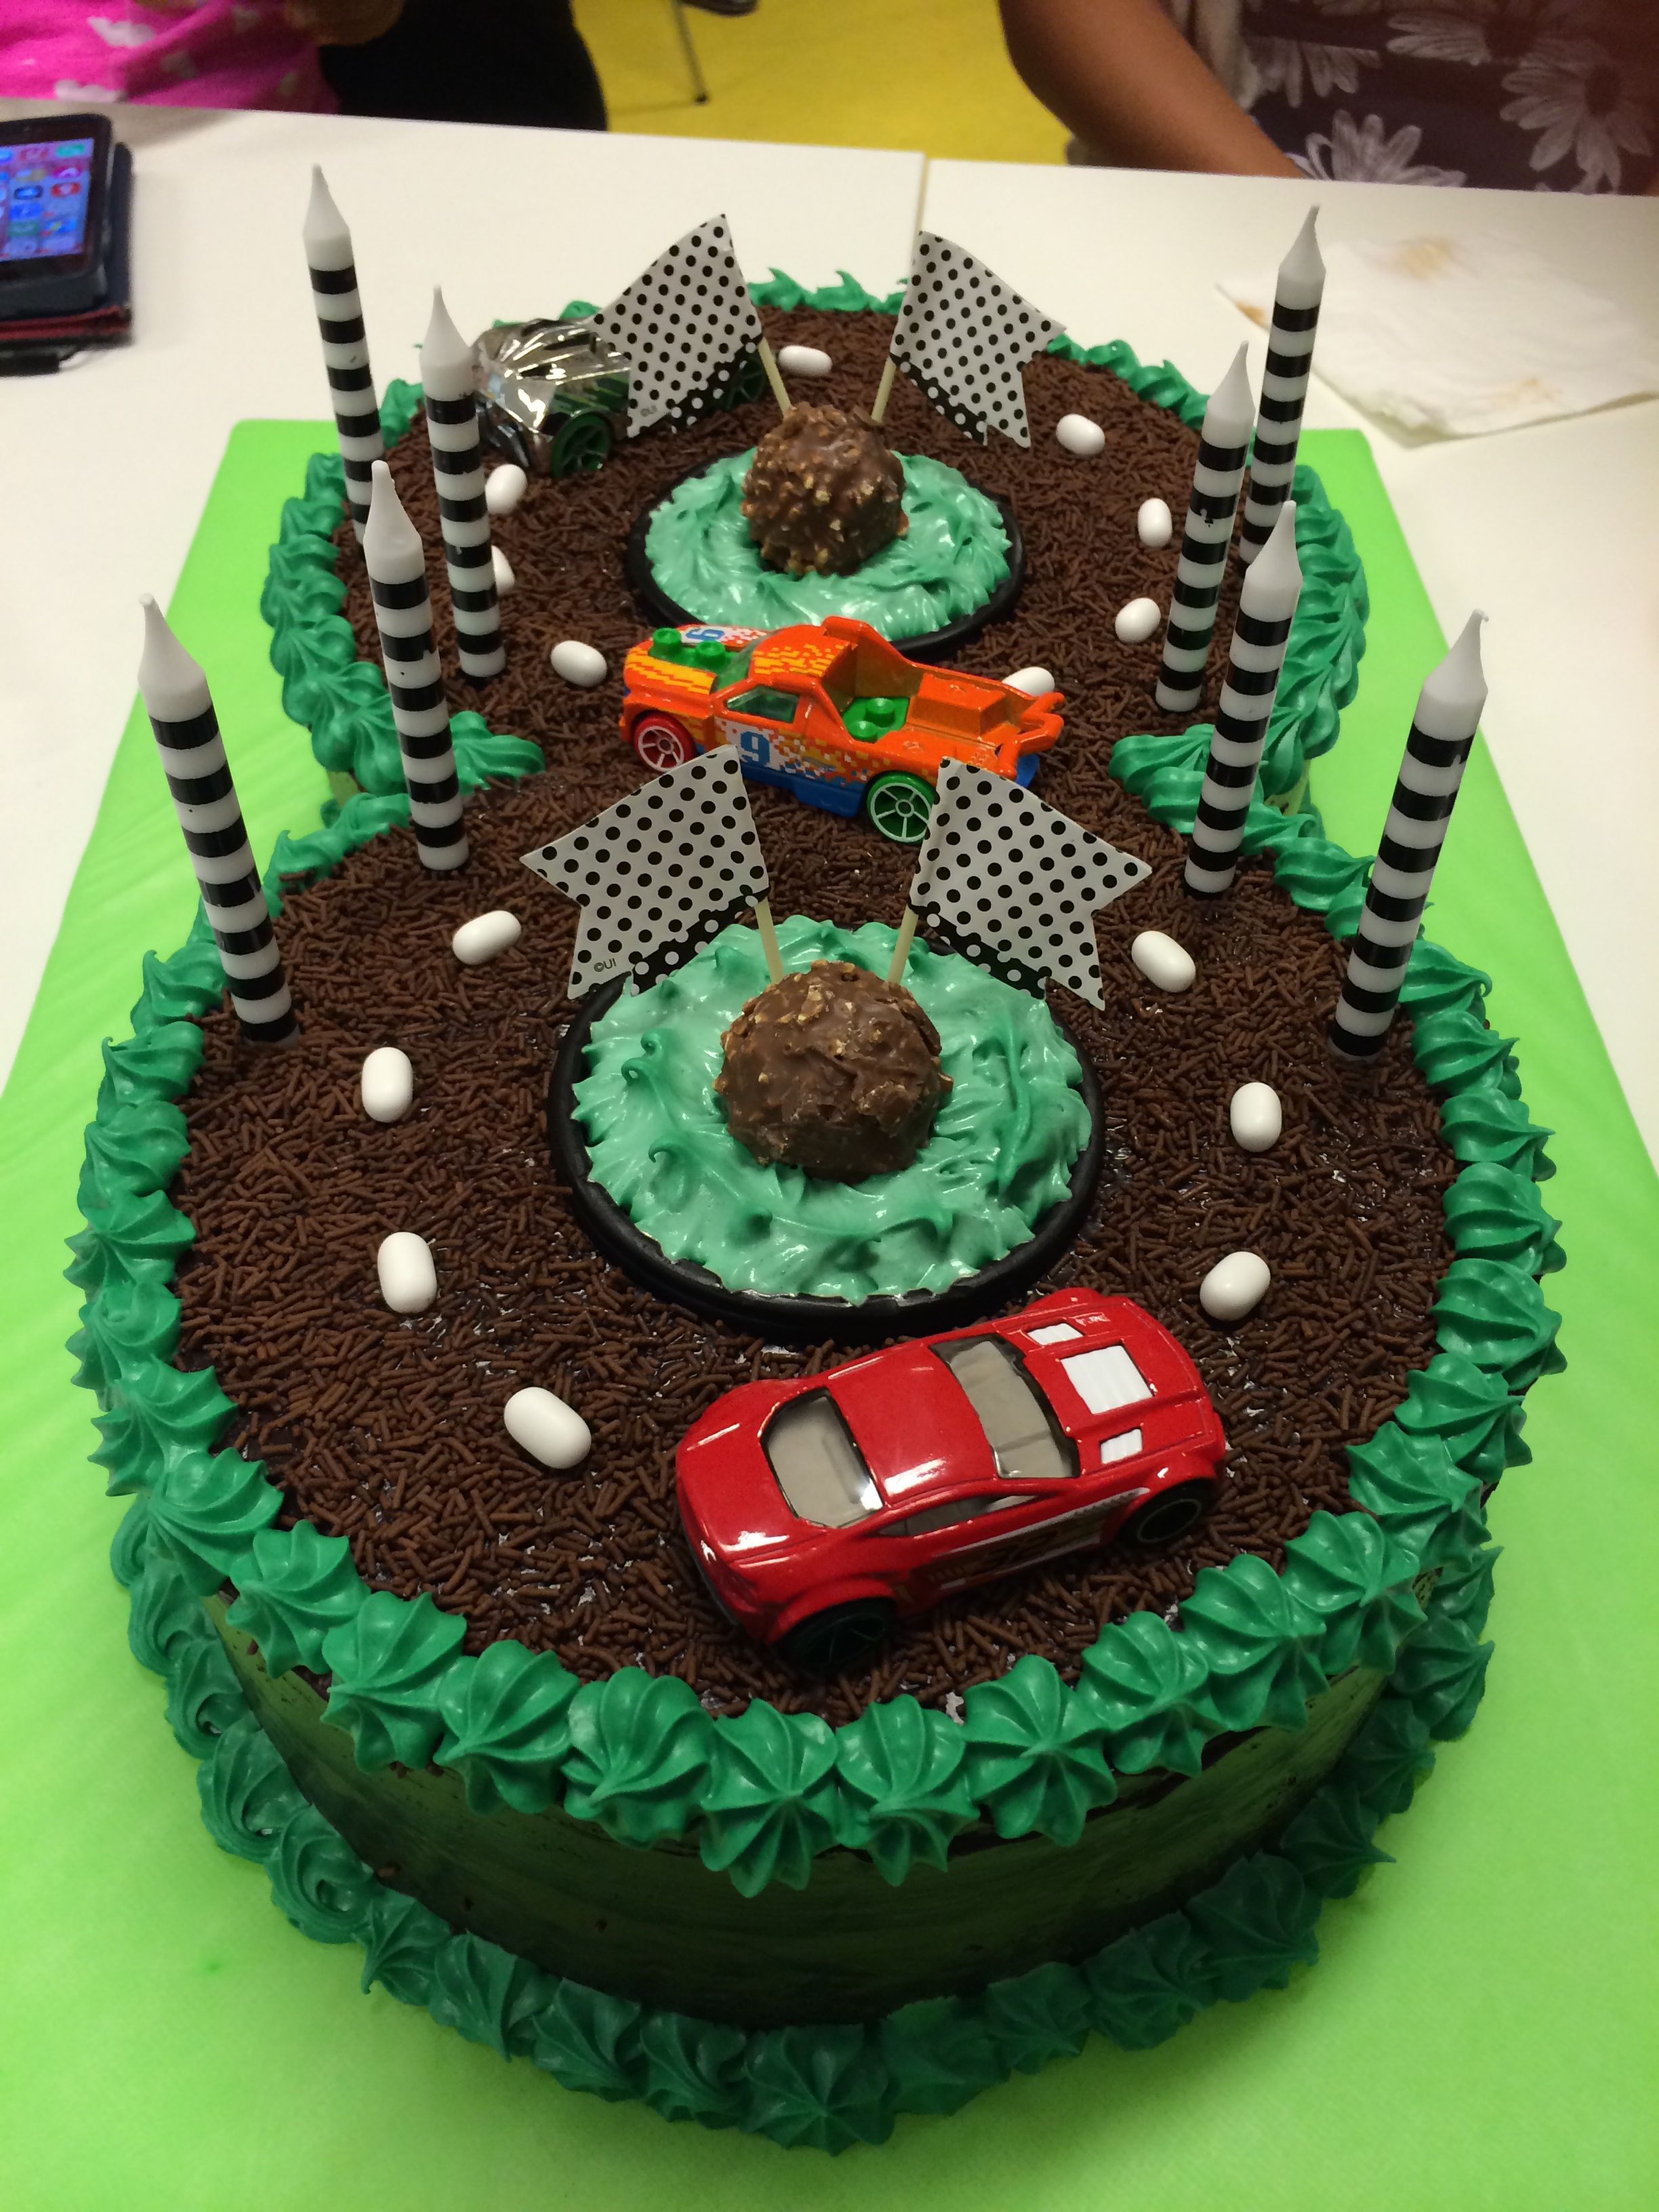 Happy Birthday To My Little Man With Images 8th Birthday Cake Boy Birthday Cake Childrens Birthday Cakes